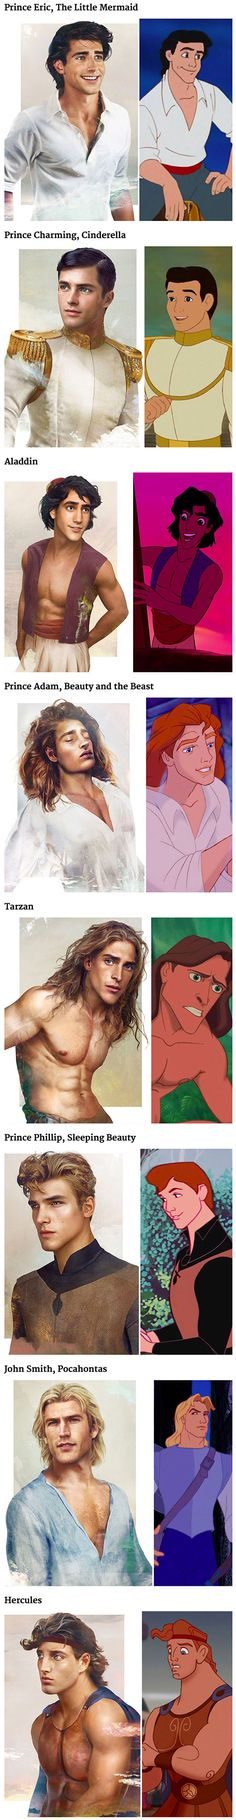 If you've ever wondered what Disney's princes might have looked like in real life, Jirka Väätäinen, a Finnish artist and designer in Melbourne, has answered that question definitively with his series of real-life Disney prince illustrations. They don't call him 'prince charming' for nothing!